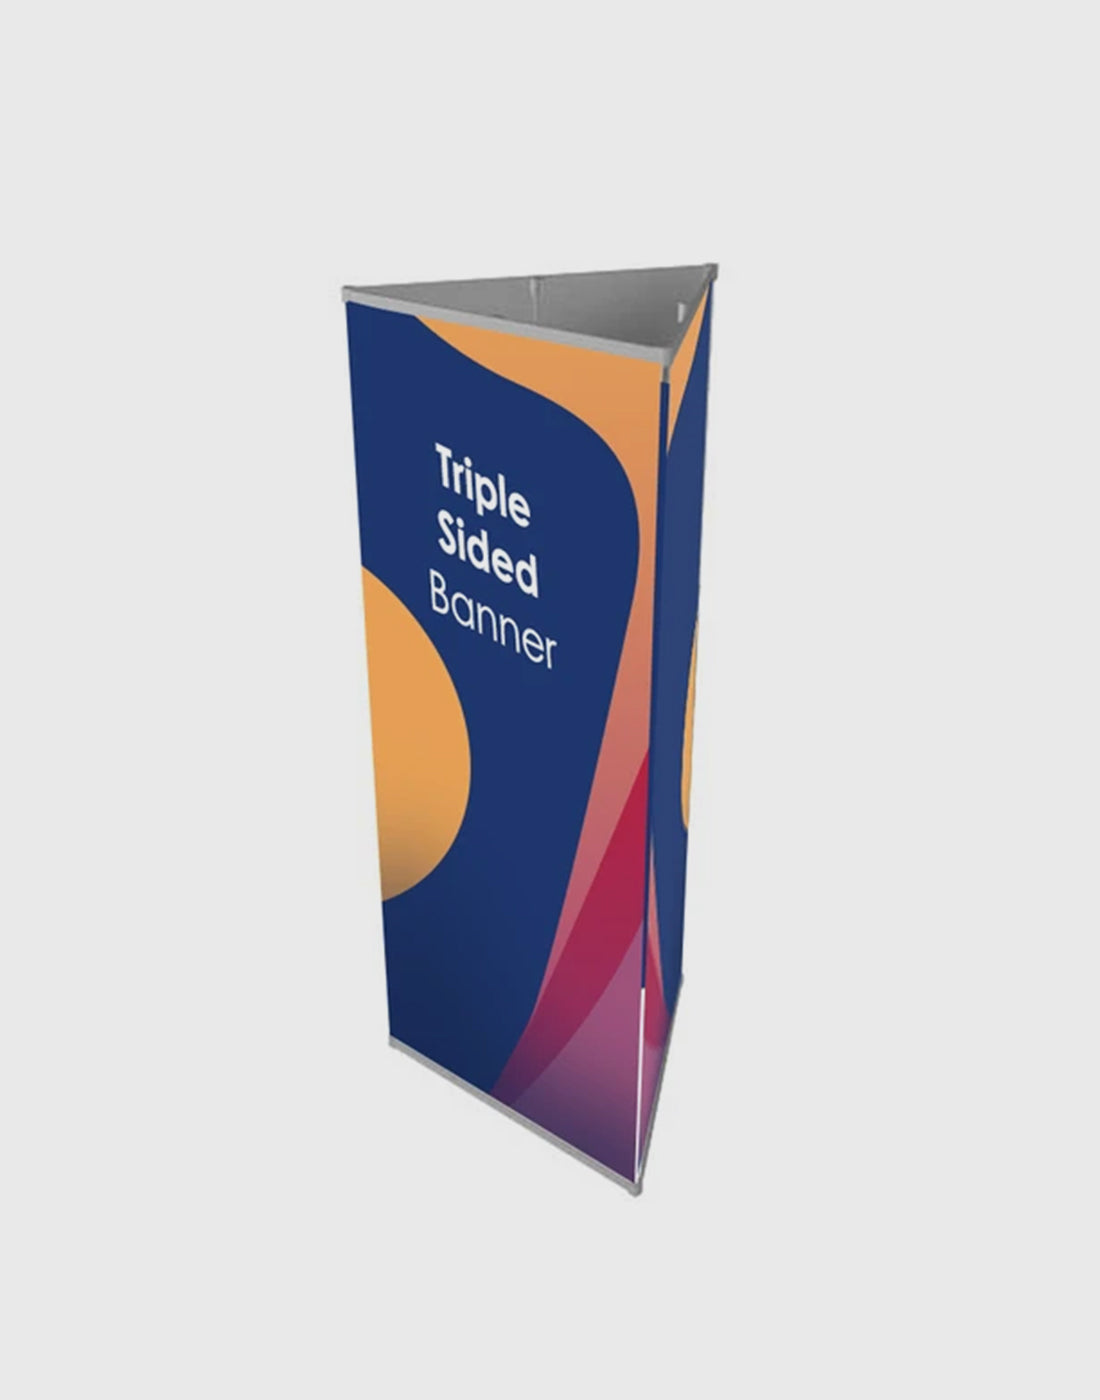 Tri-banner 3 sided Triangle Banner Display Stand